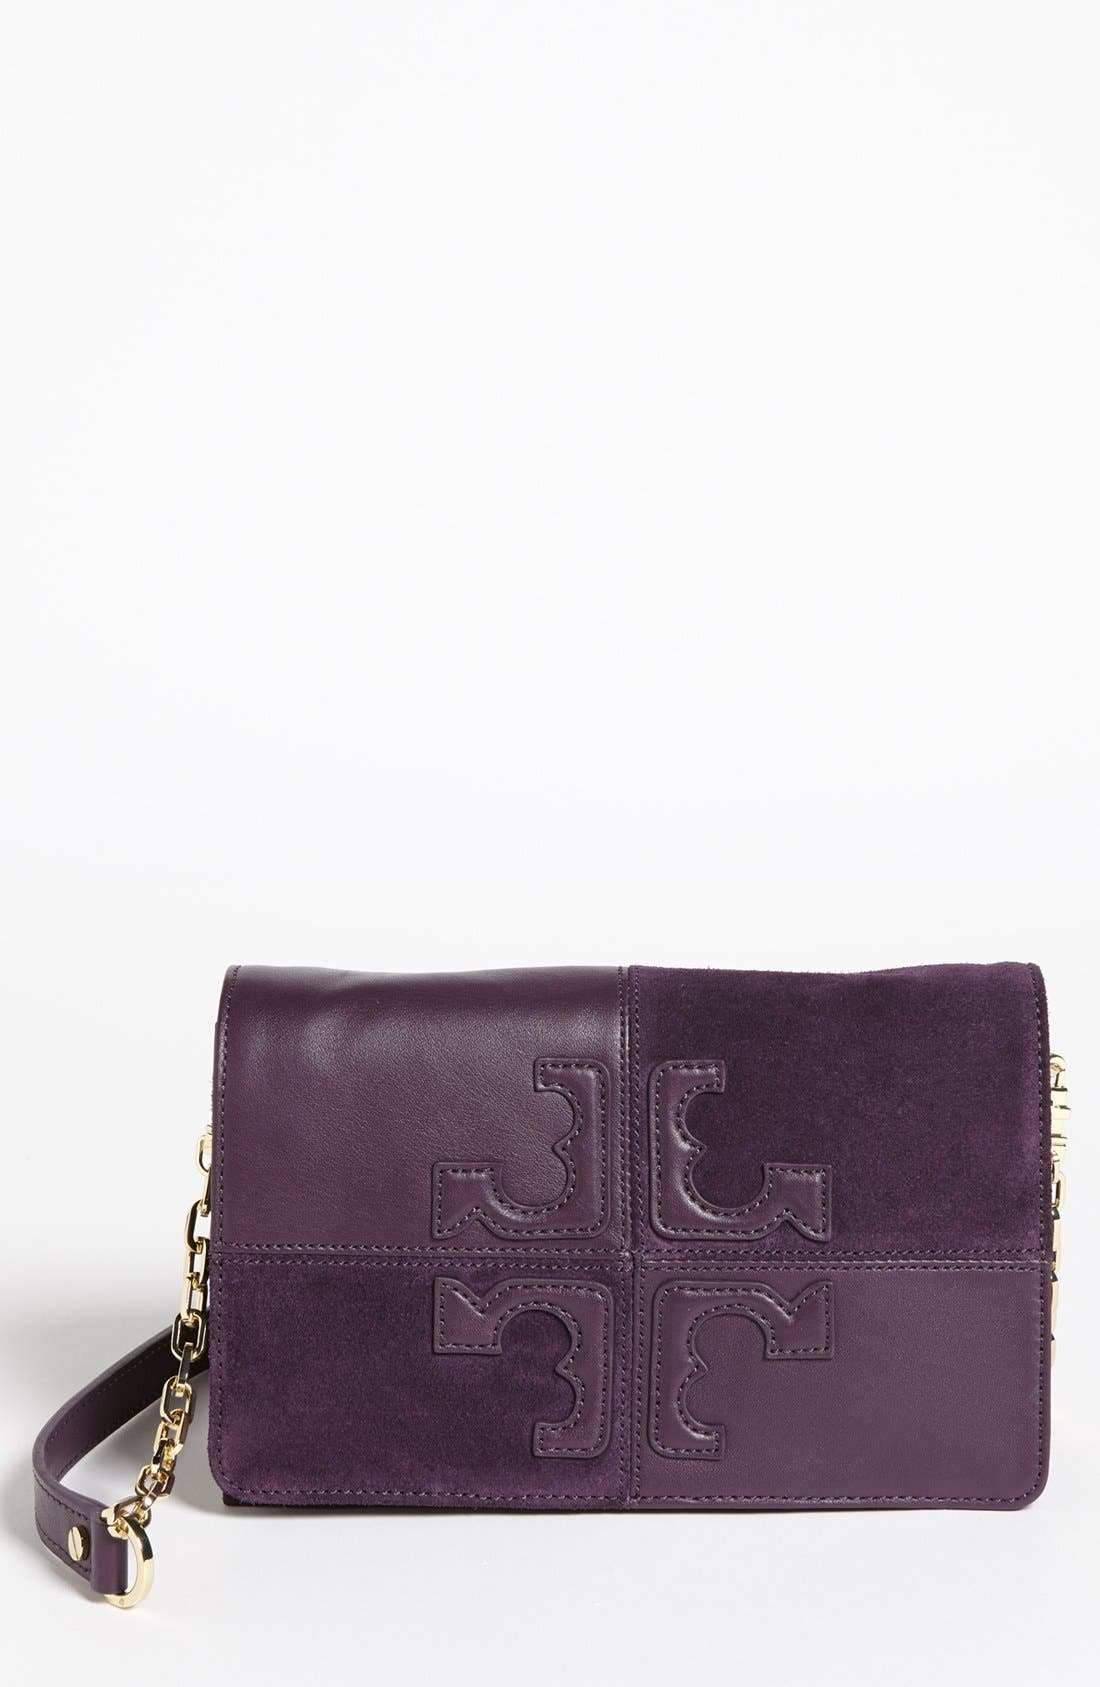 Main Image - Tory Burch 'Natalie' Crossbody Bag